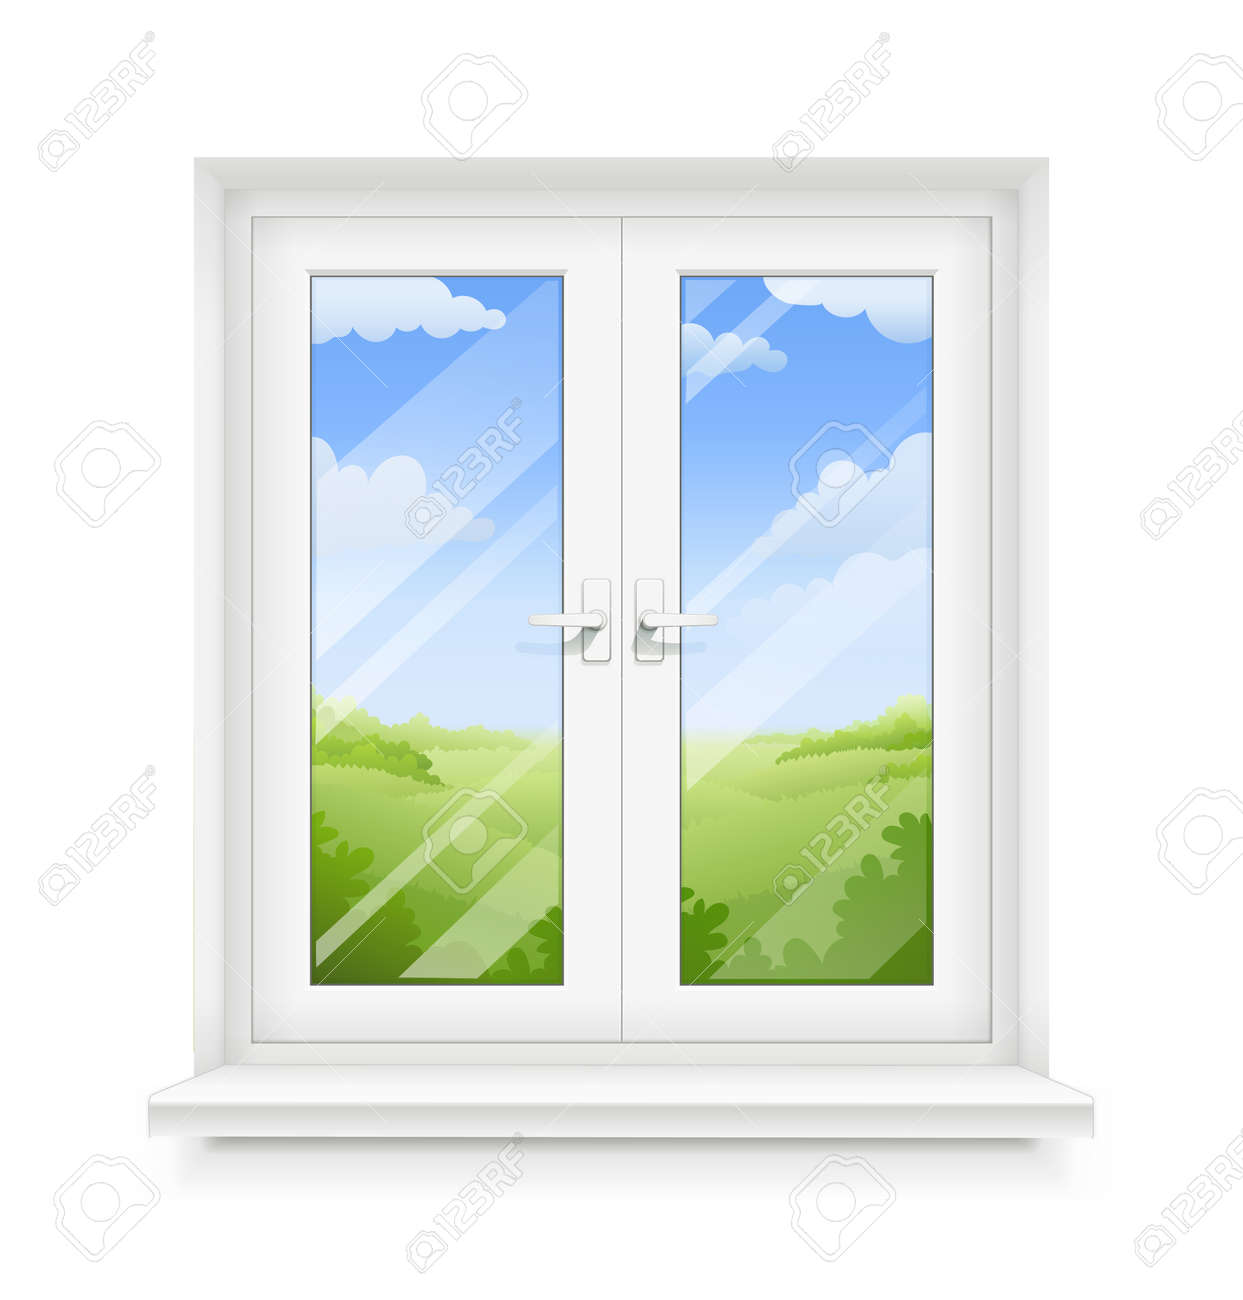 White classic plastic window with windowsill. Transparent framing interior design element. Construction part. Clean domestic glass. Sky and ground panorama view. EPS10 vector illustration. - 104111530